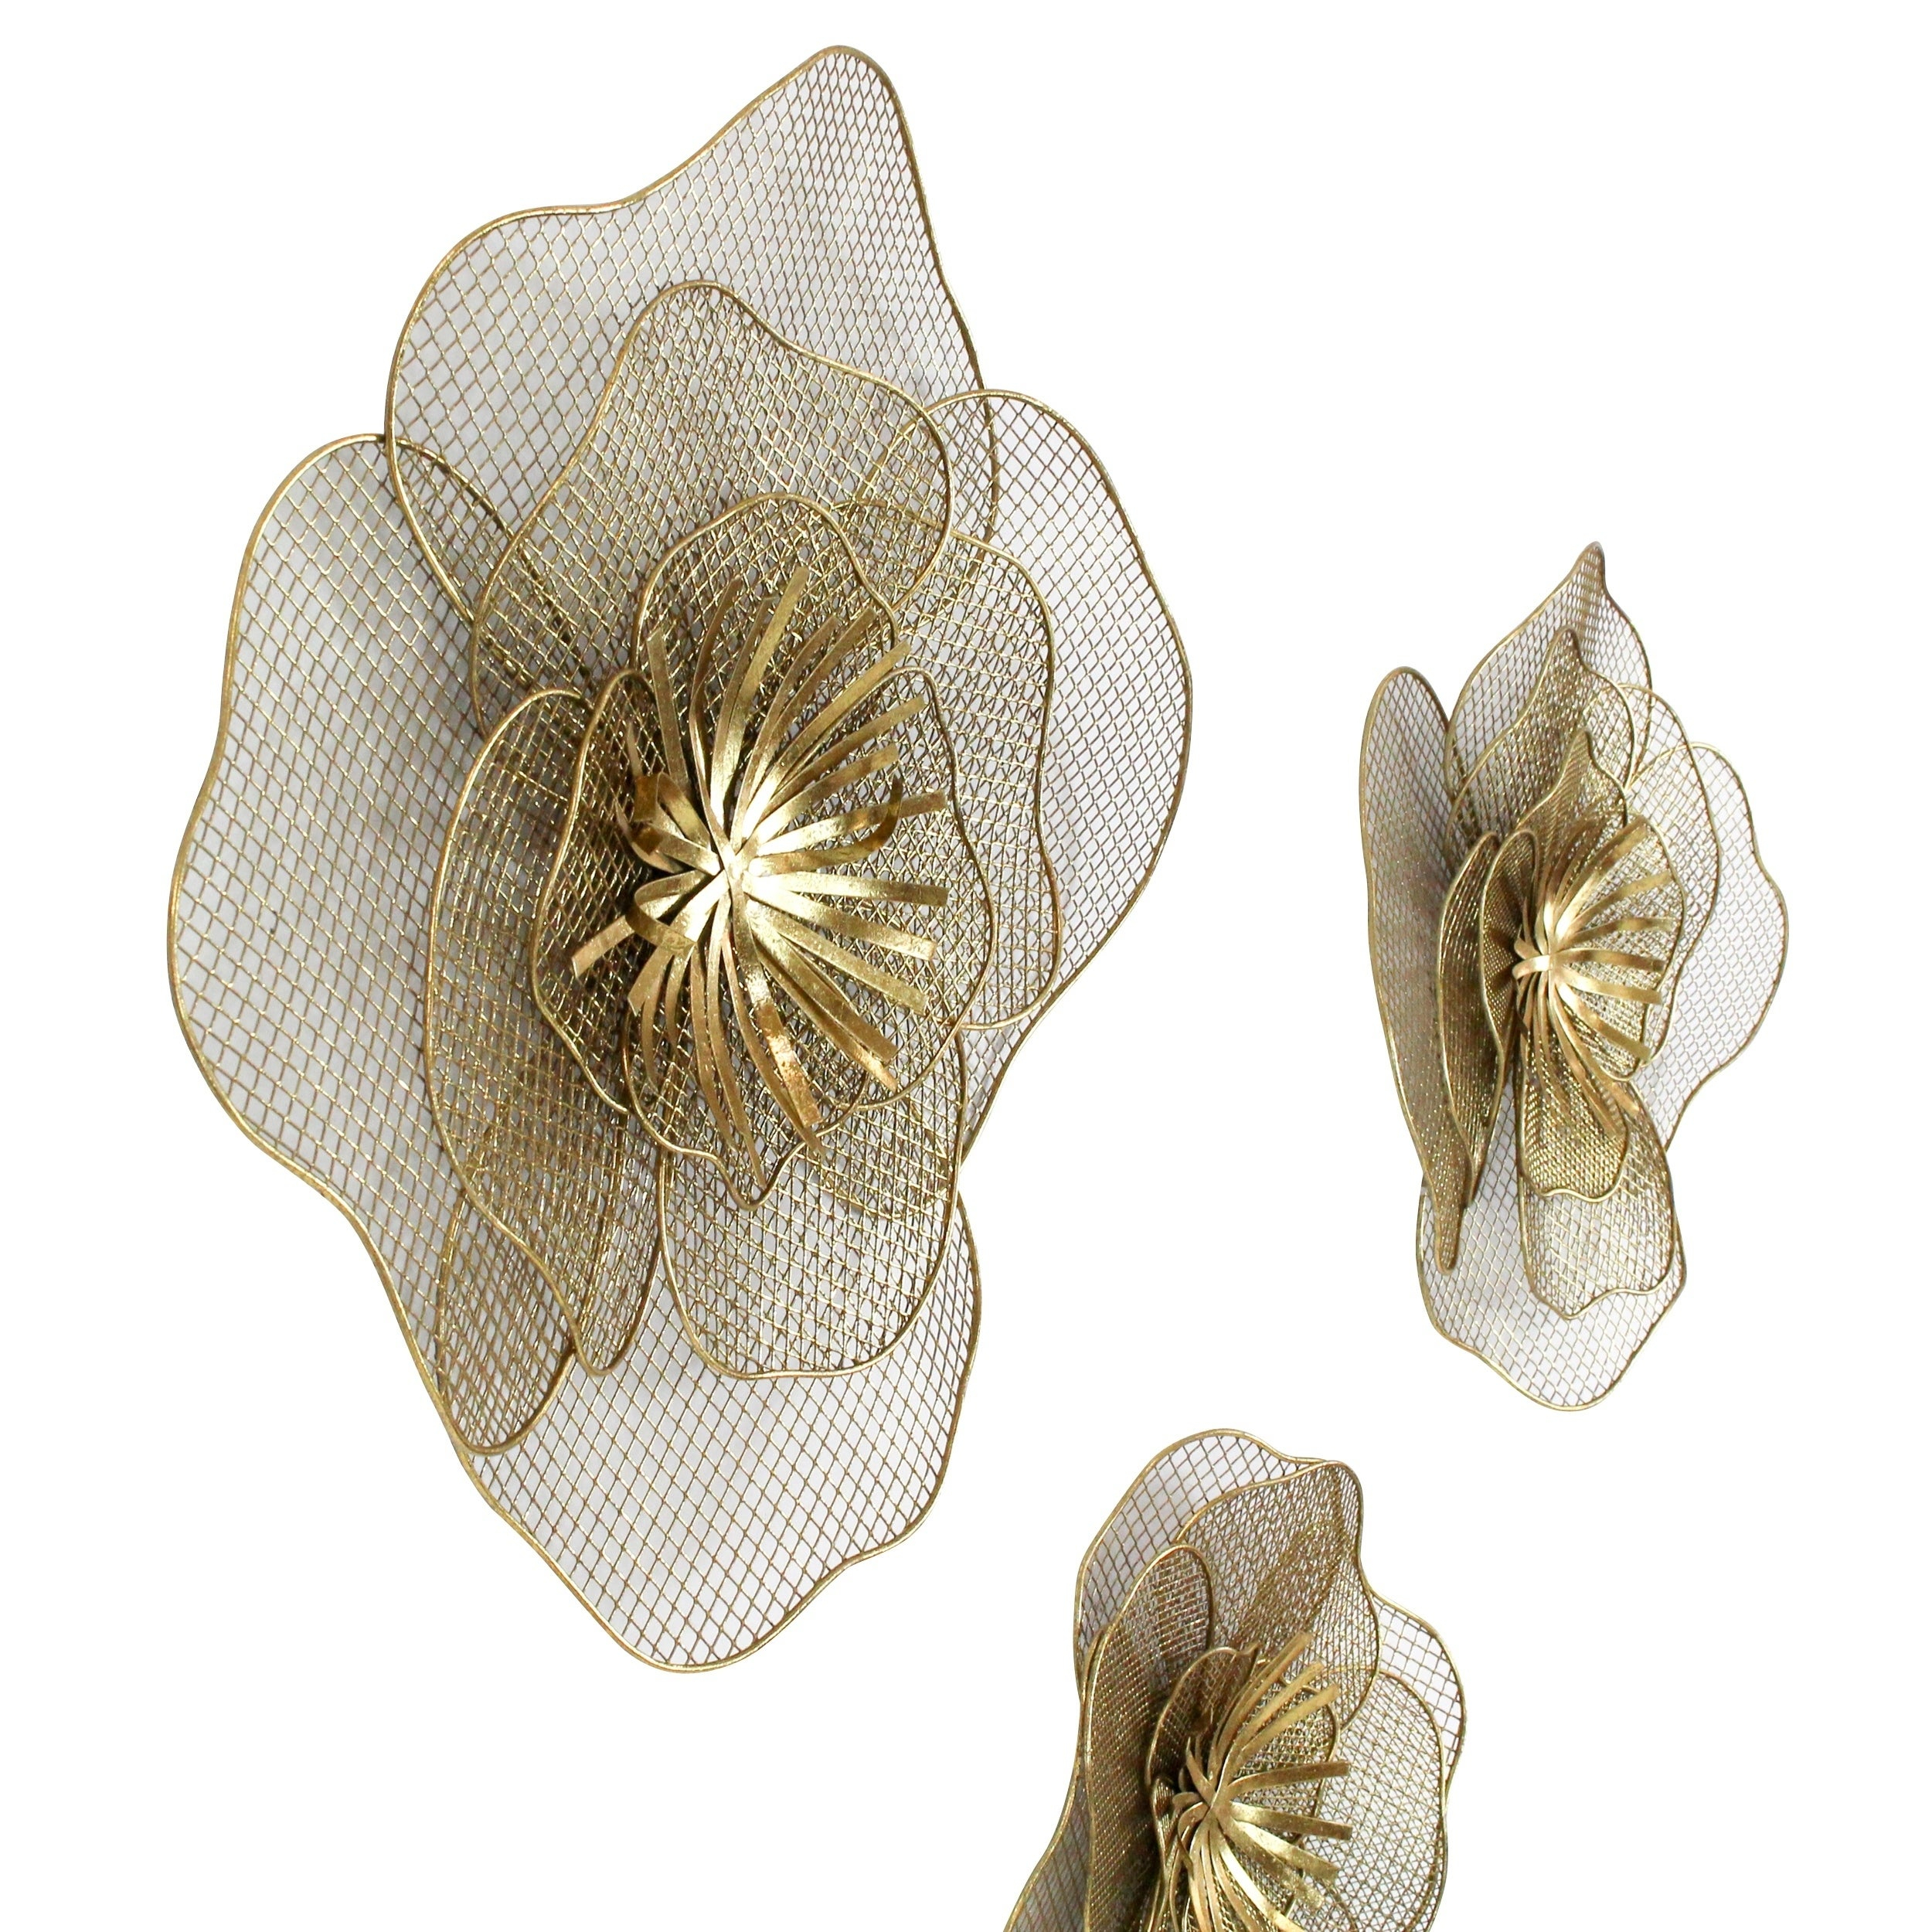 Metal Flower Wall Decor (Set Of 3) Inside Best And Newest Shop Lori Metal Flowers Wall Decor (Set Of 3) – Free Shipping Today (View 7 of 20)